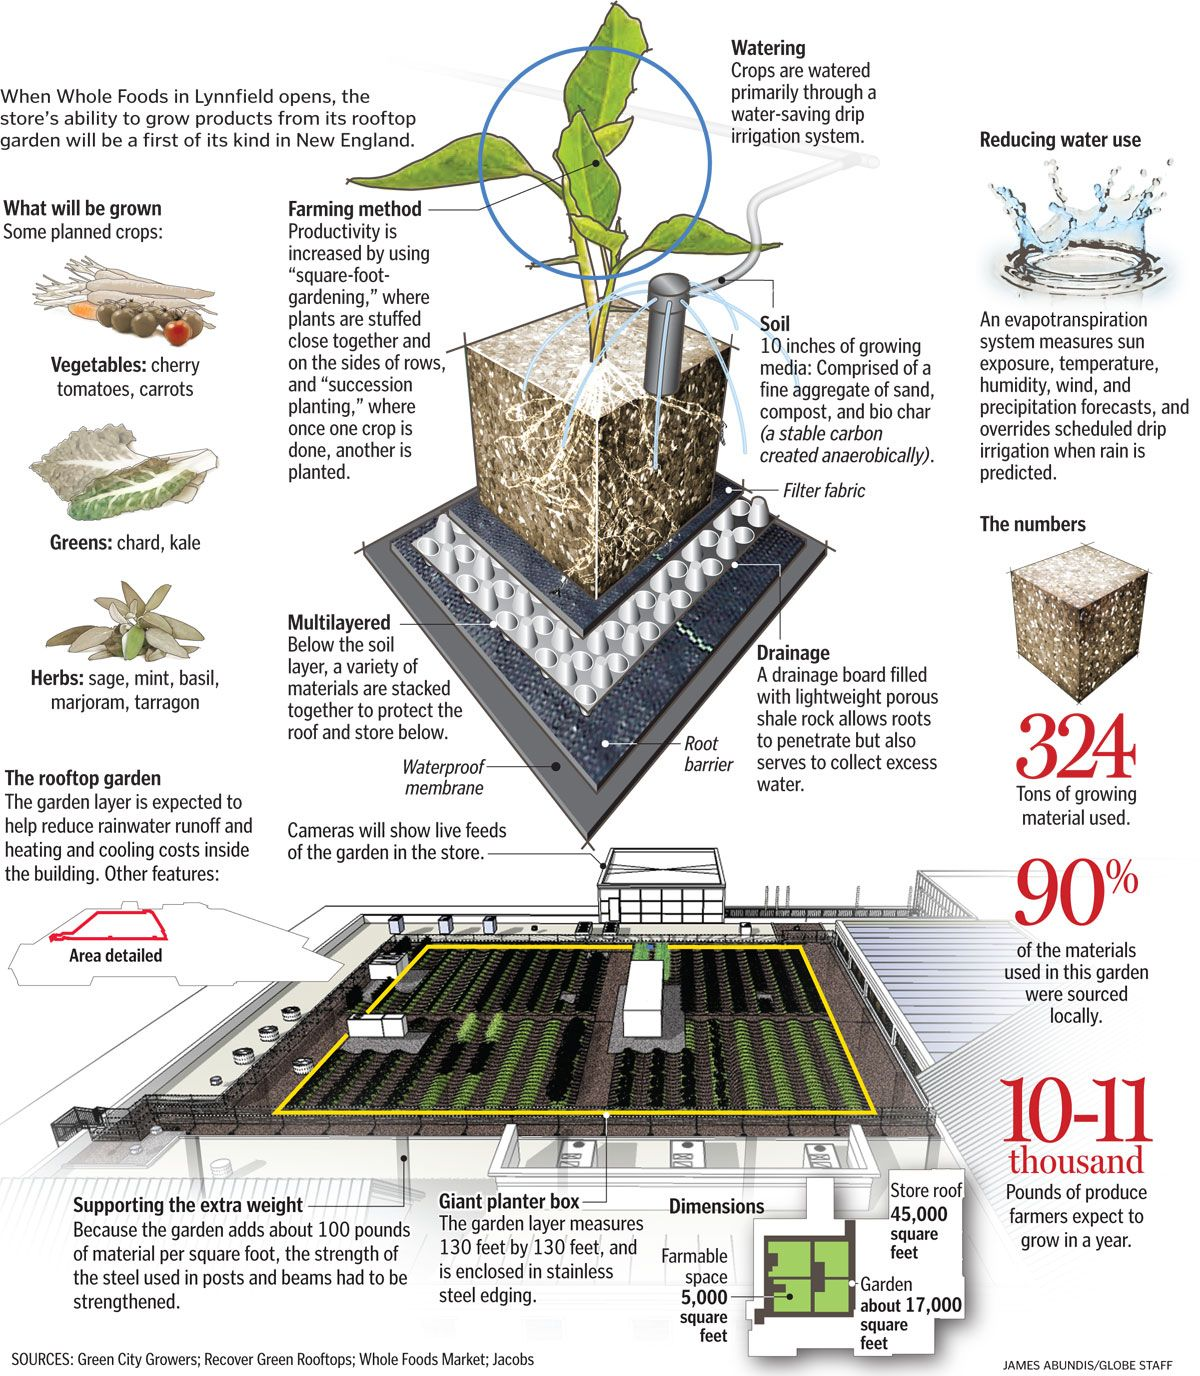 Haute Cuisine Whole Foods Store To Sell Produce Grown On Its Roof The Boston Globe Home Vegetable Garden Rooftop Garden